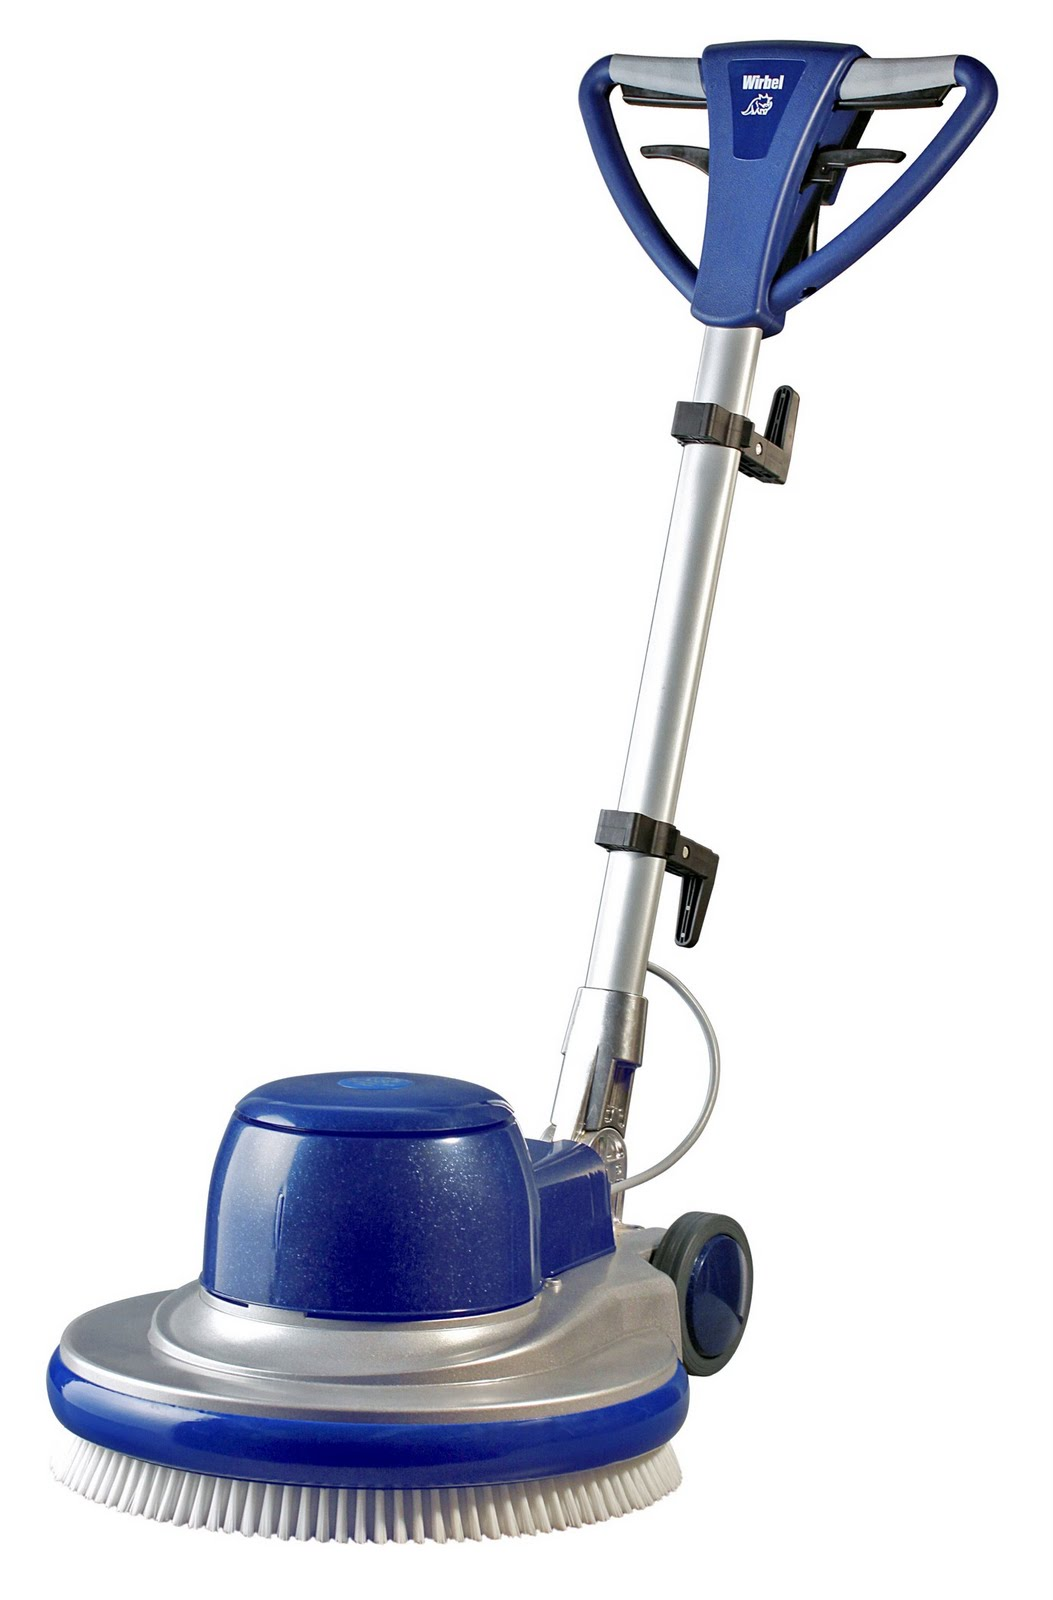 the carpet machine